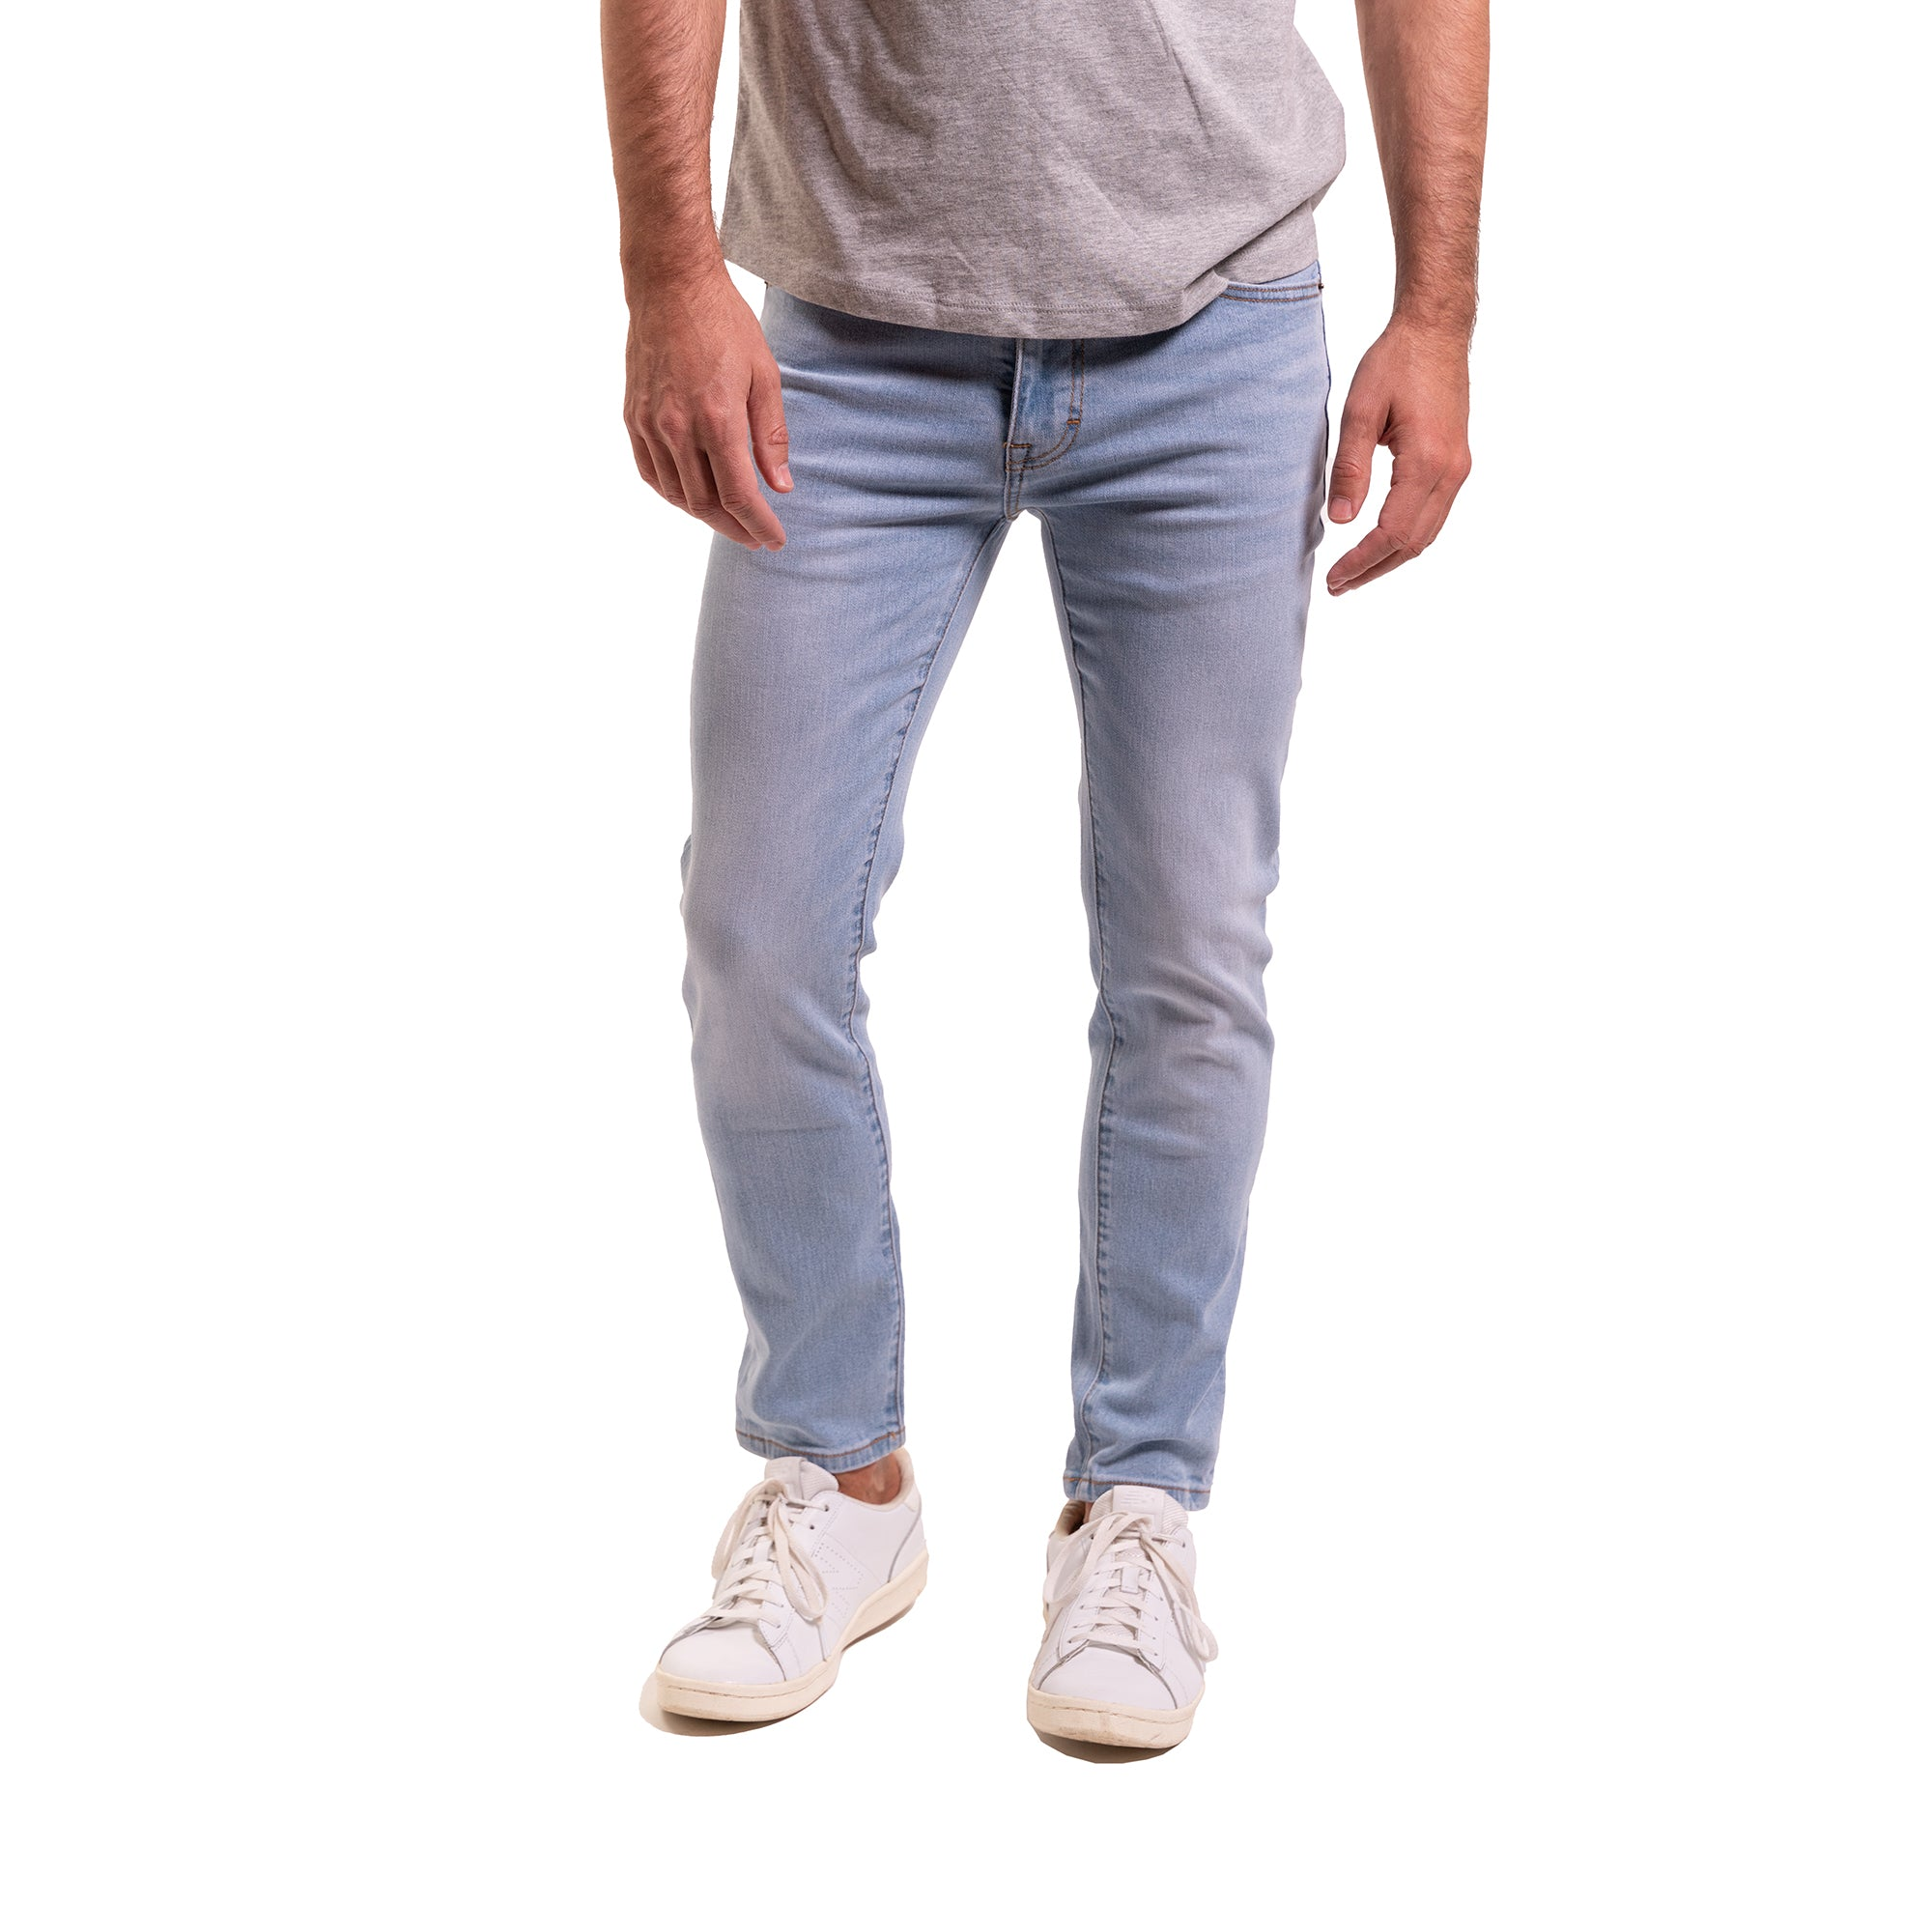 Johnny Stretch Jeans Skinny Fit - Light Wash